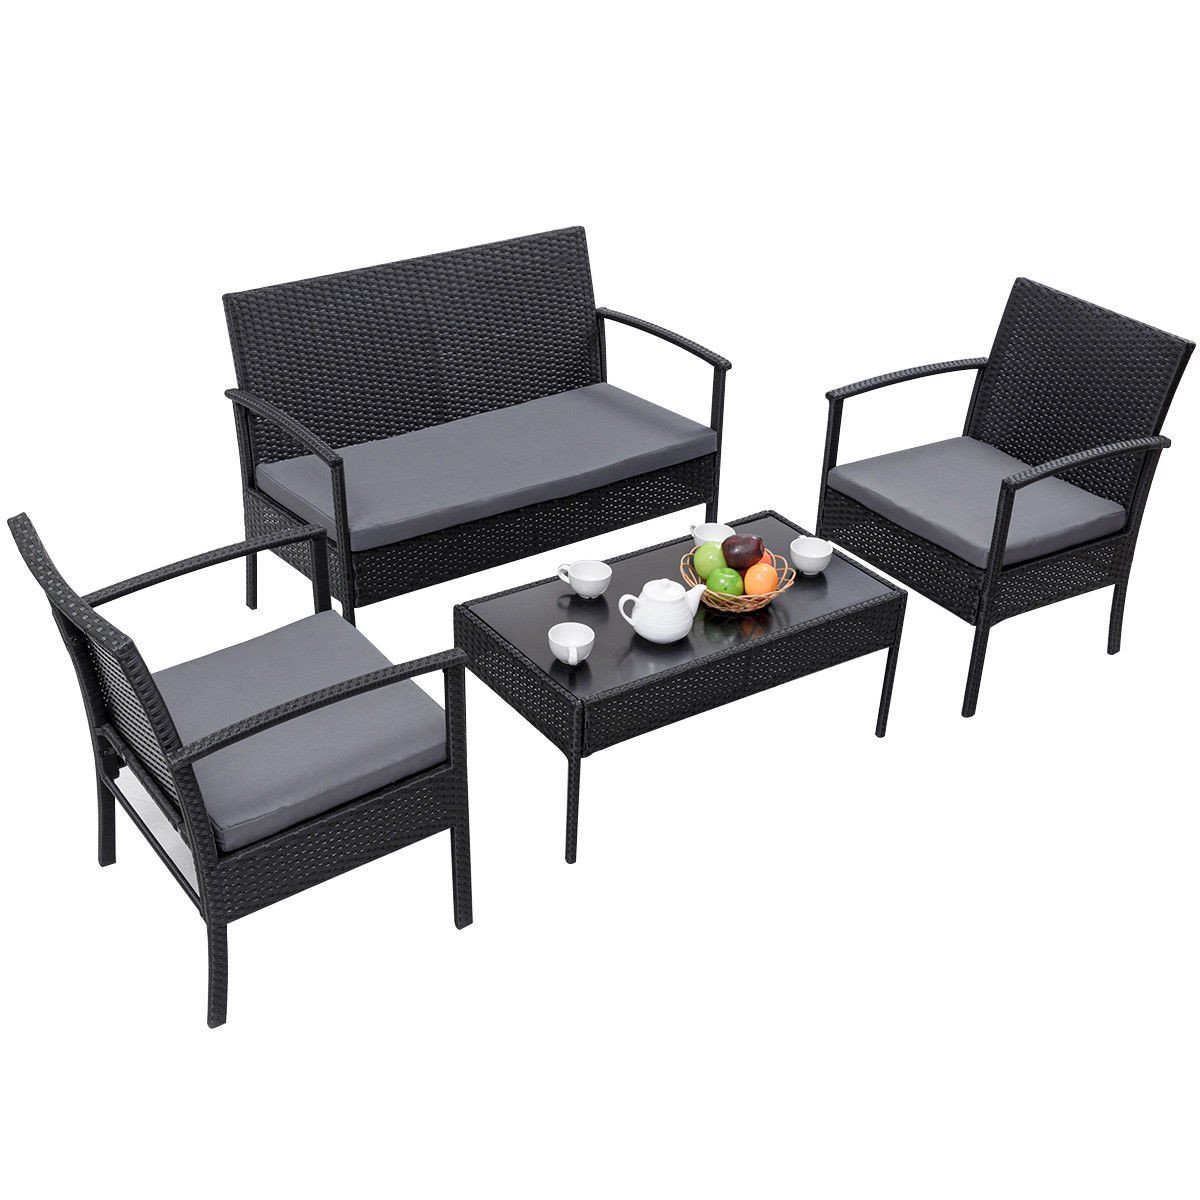 4 Piece Outdoor Rattan Wicker Patio Set